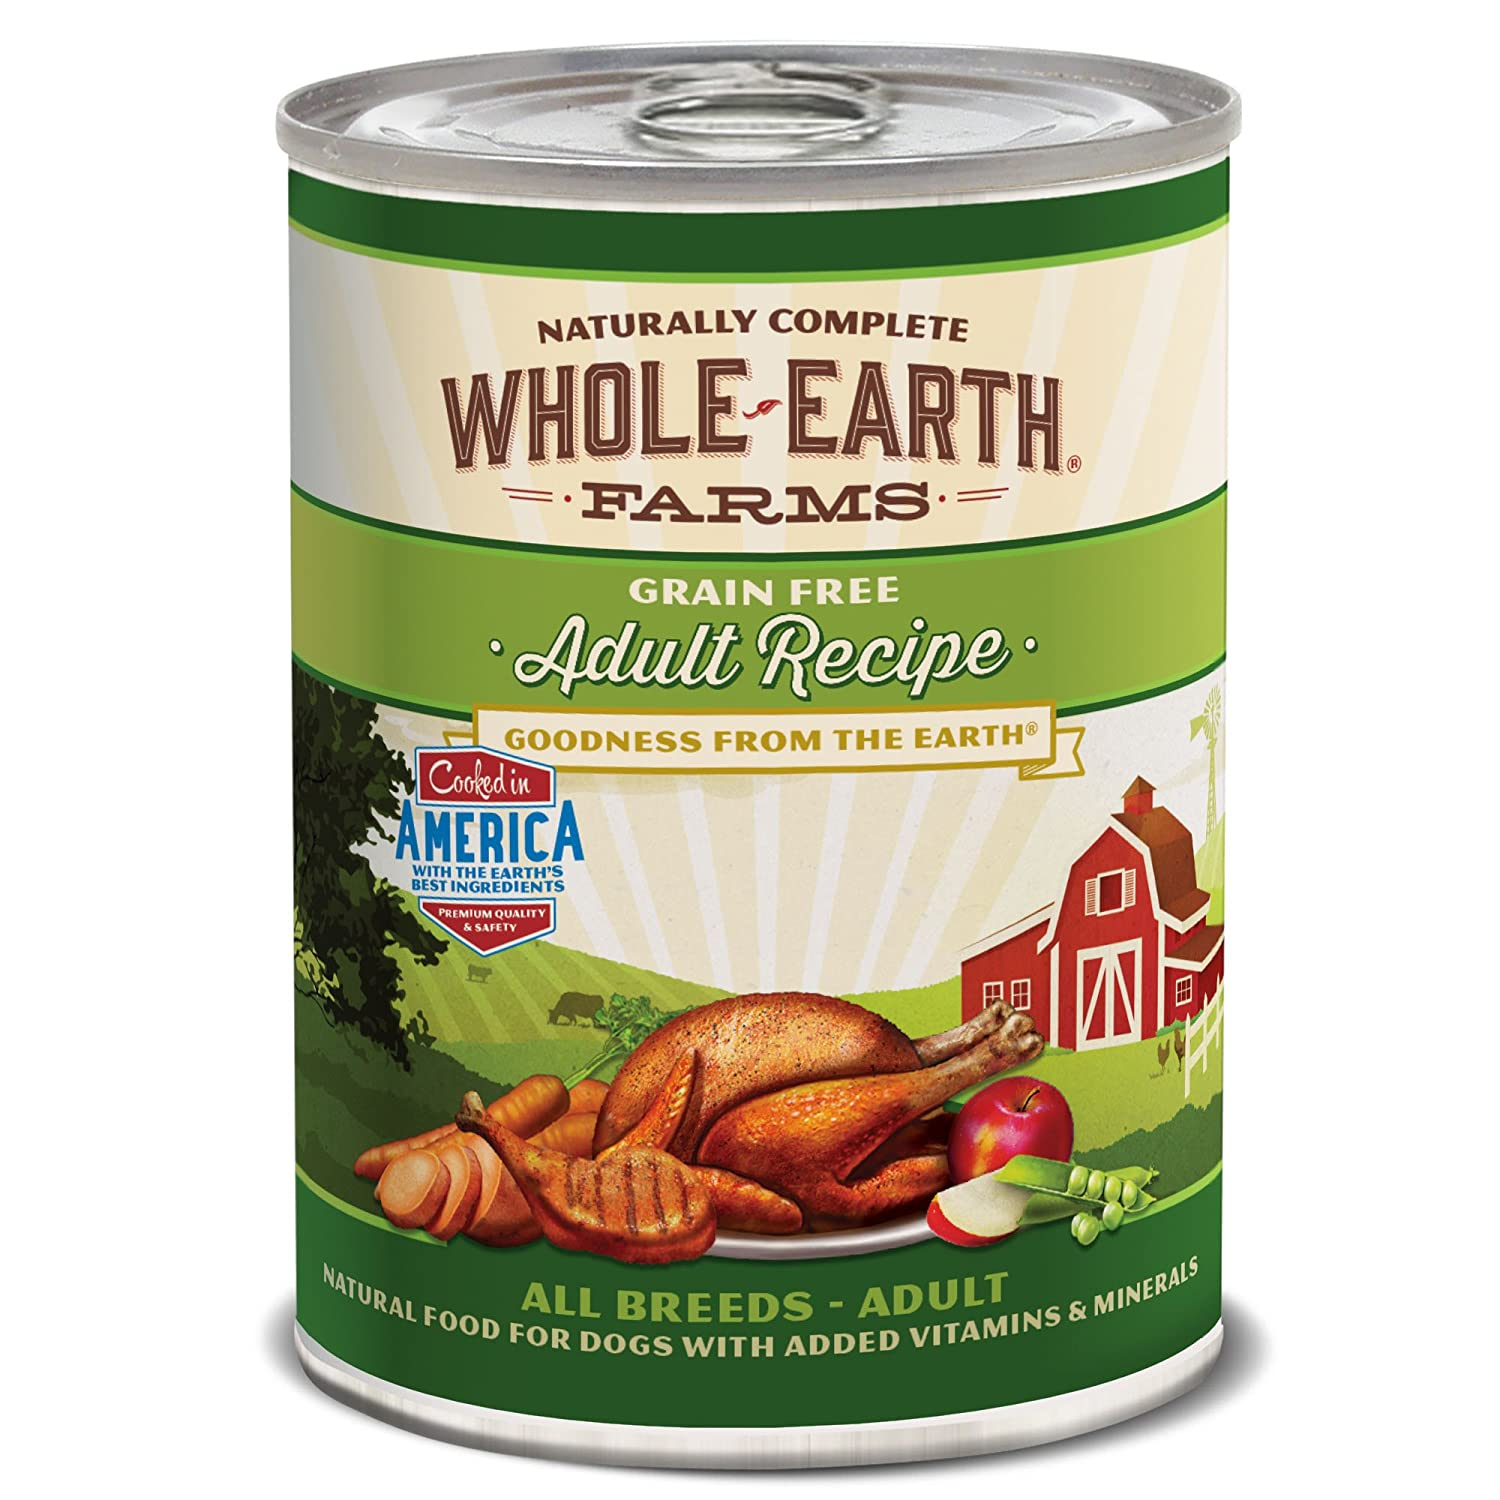 Naturally Complete Grain Free Recipe Canned Dog Food by Whole Earth Farms